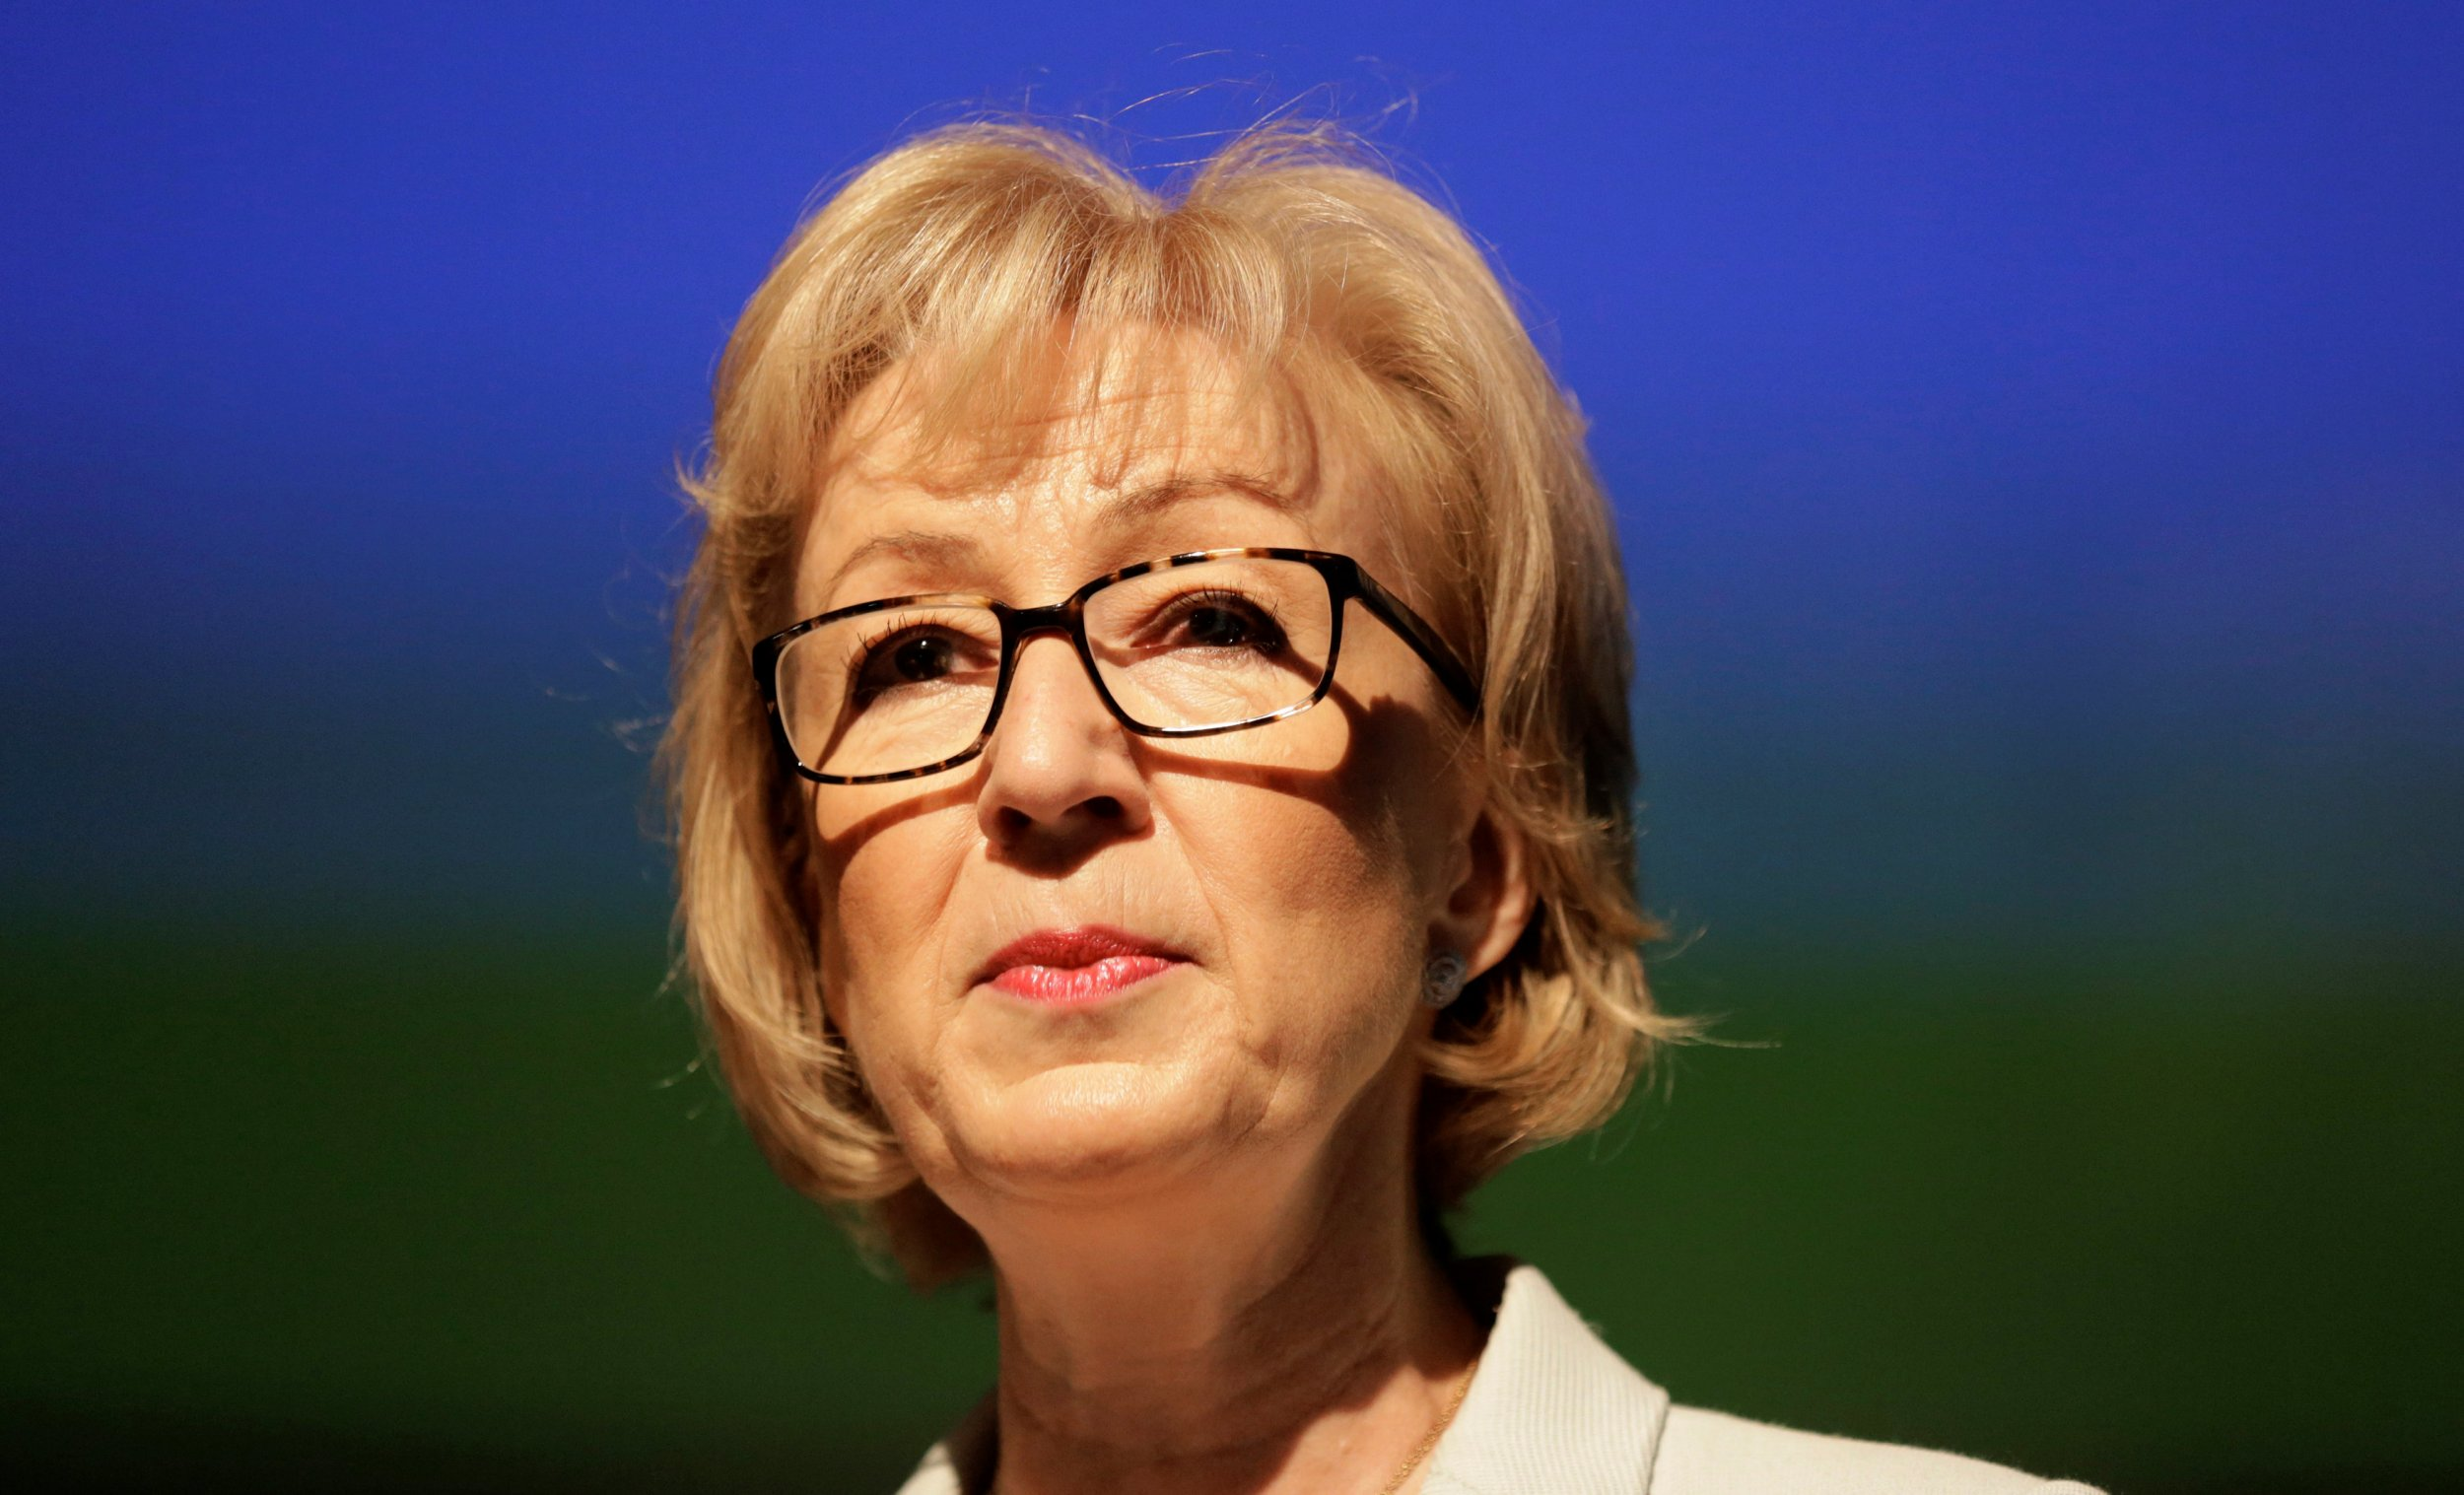 Male carer perfectly destroys shocking comments made by Andrea Leadsom about men working in care